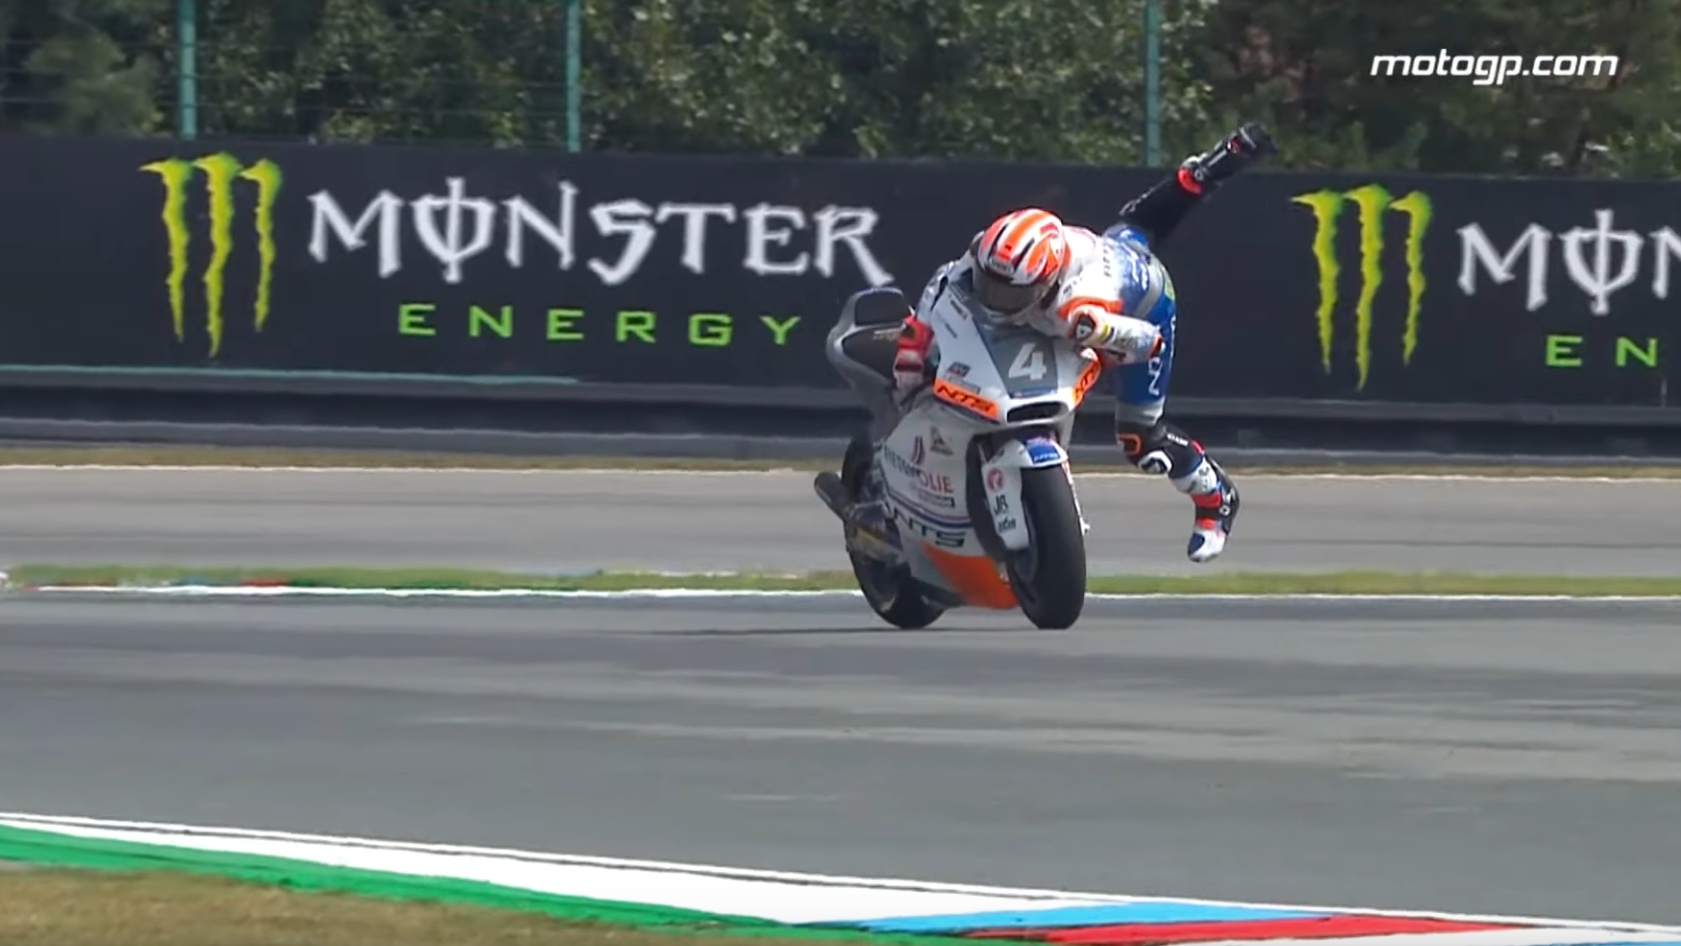 I Continue To Be Impressed By The Ragdoll Physics Of Motorcycle Racers